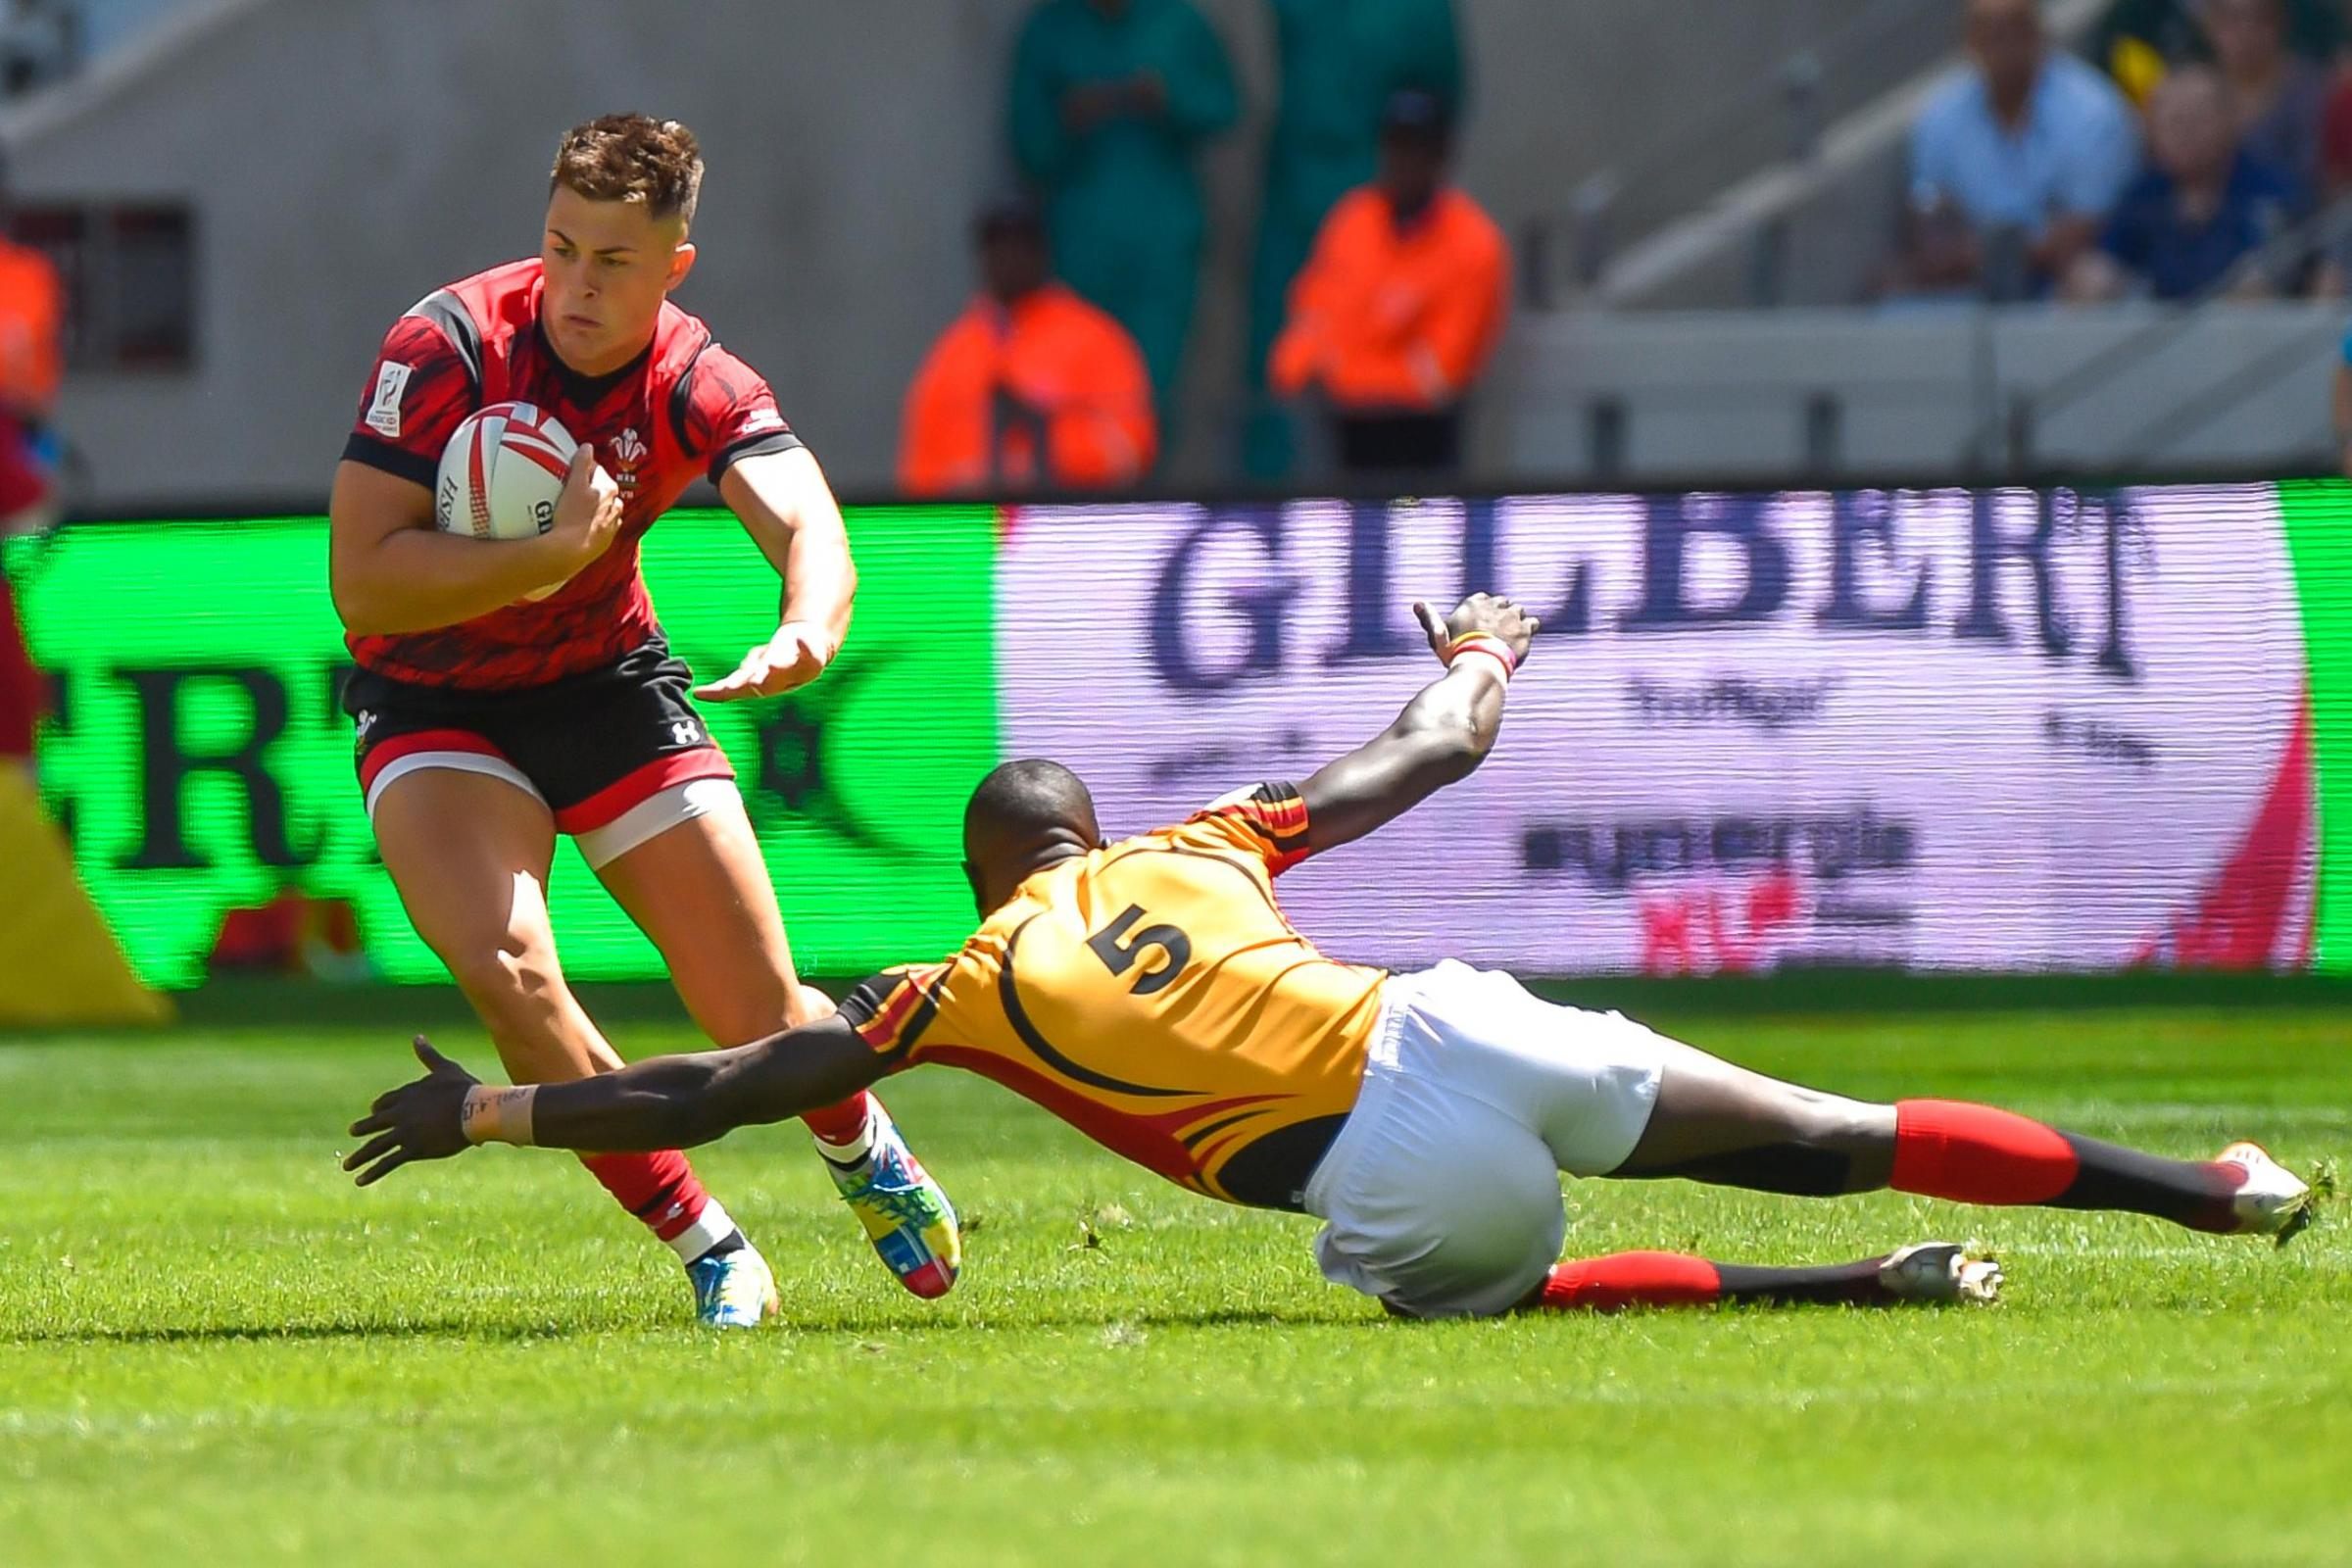 Dragons speedster Rosser gets Wales call for Twickenham